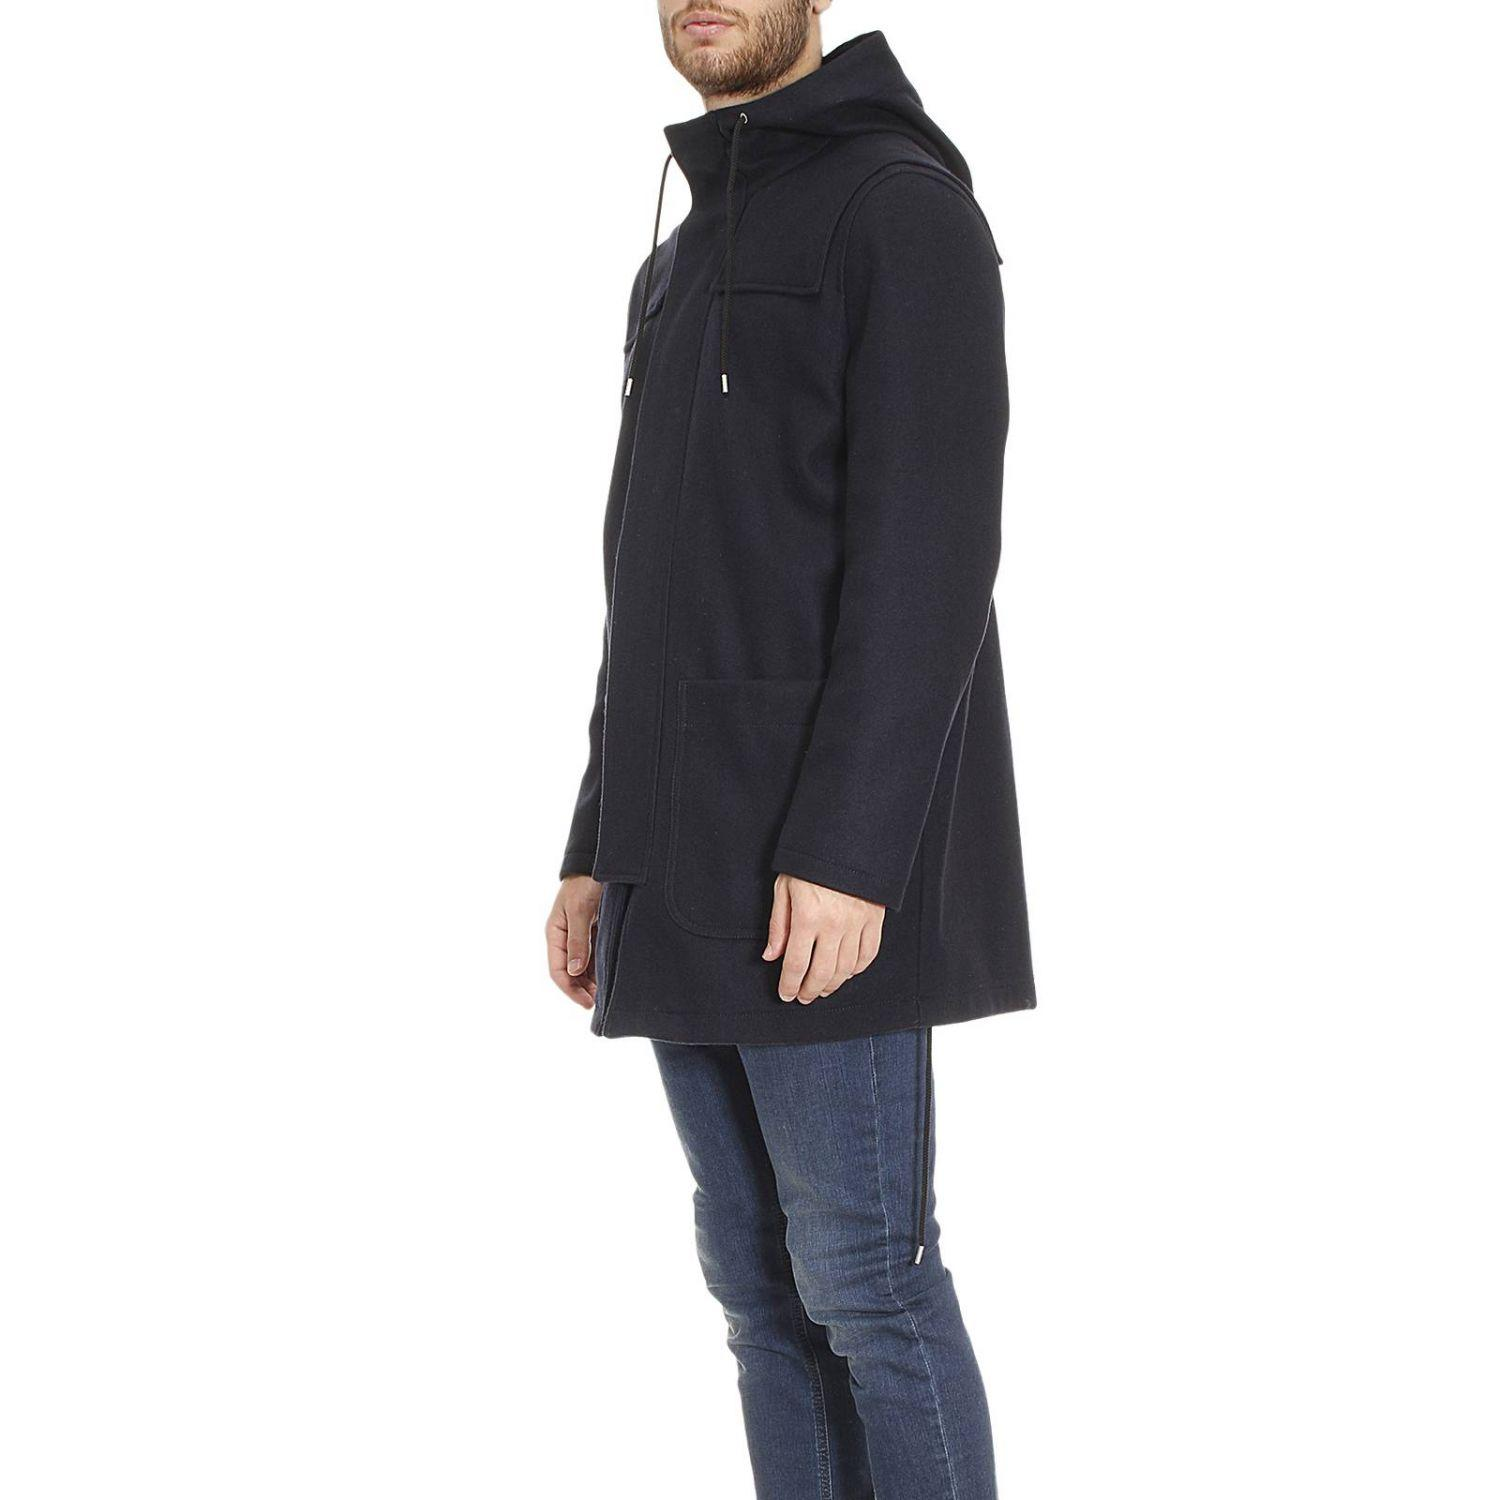 Department 5 Jackets Man in Navy (Blue) for Men